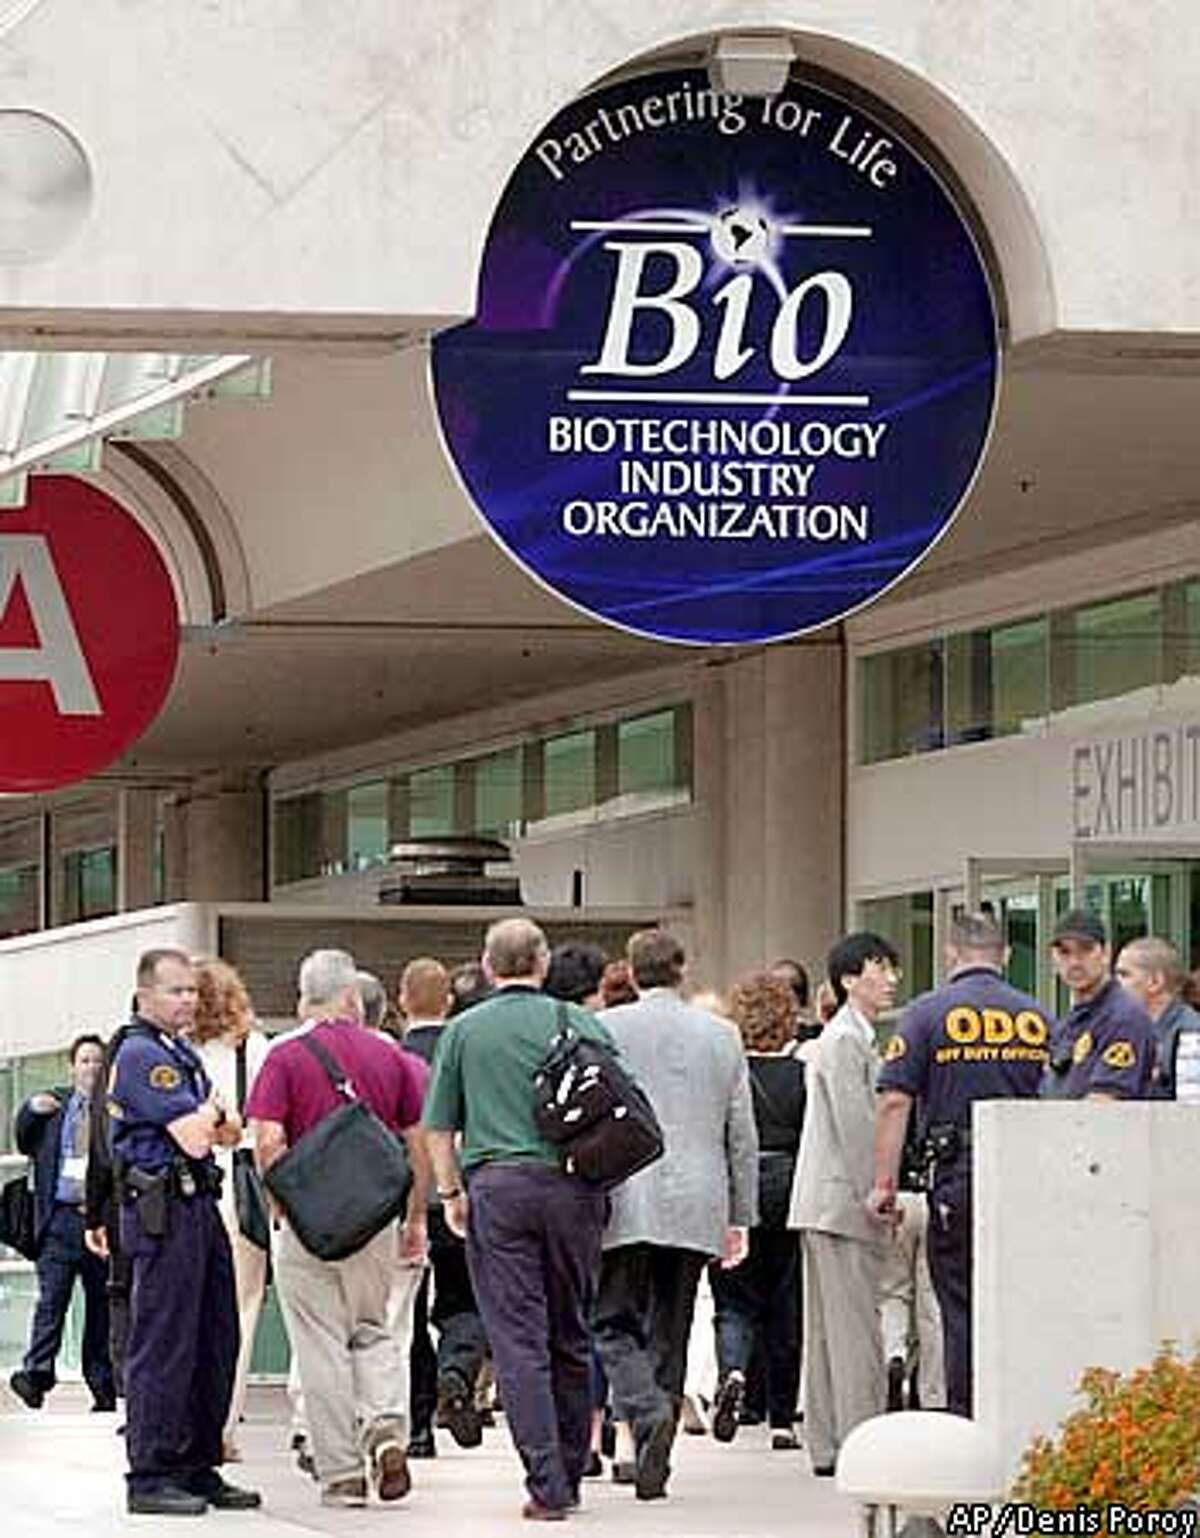 Biotech convention attendees enter the San Diego Convention Center under tight security for the first full day of the biotech convention Monday, June 25, 2001. The expected large protests were absent from the opening plenary breakfast. (AP Photo/Denis Poroy)